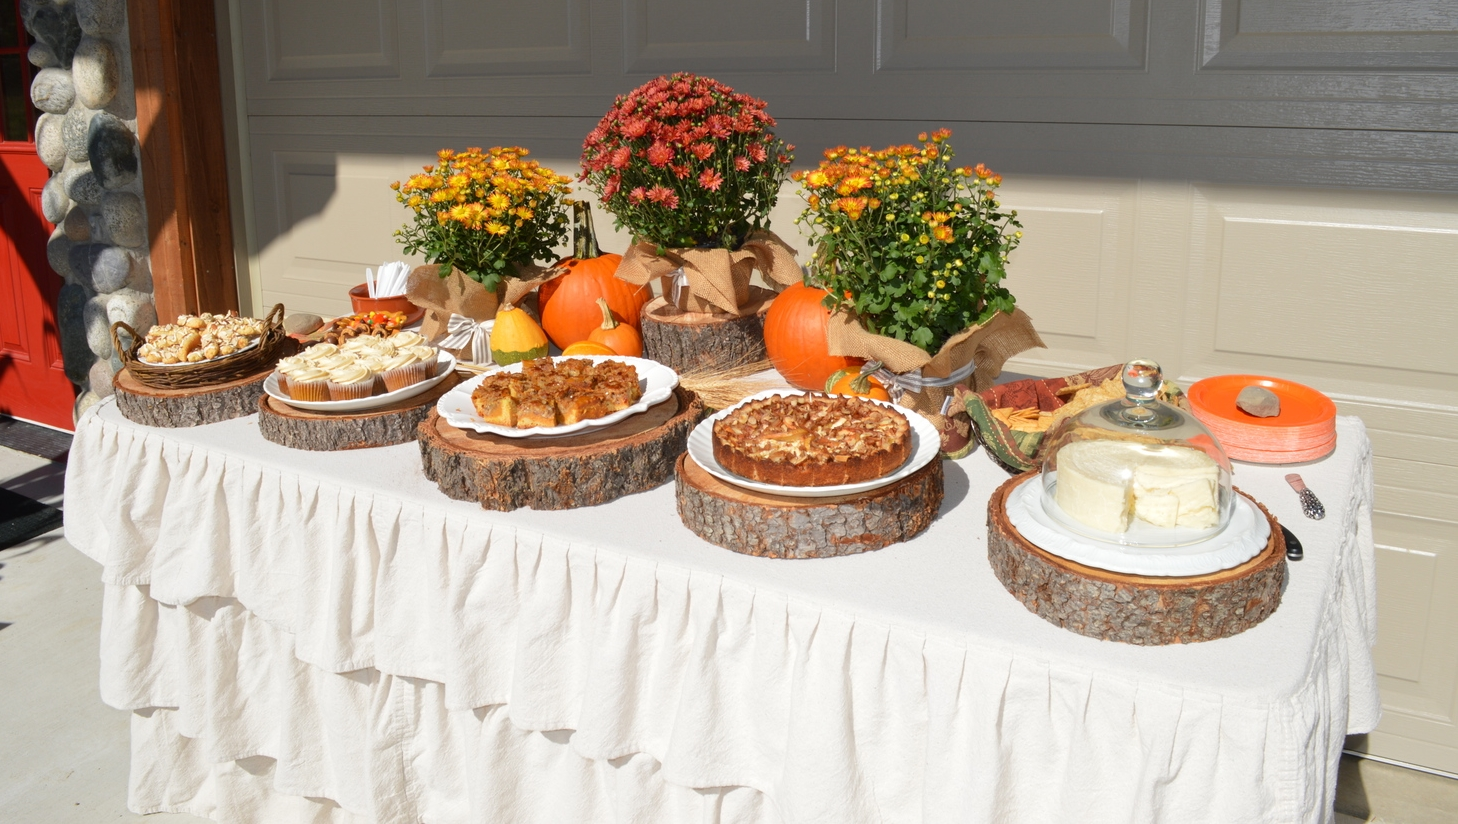 Mostly desserts, with a round of Cougar Gold cheese...